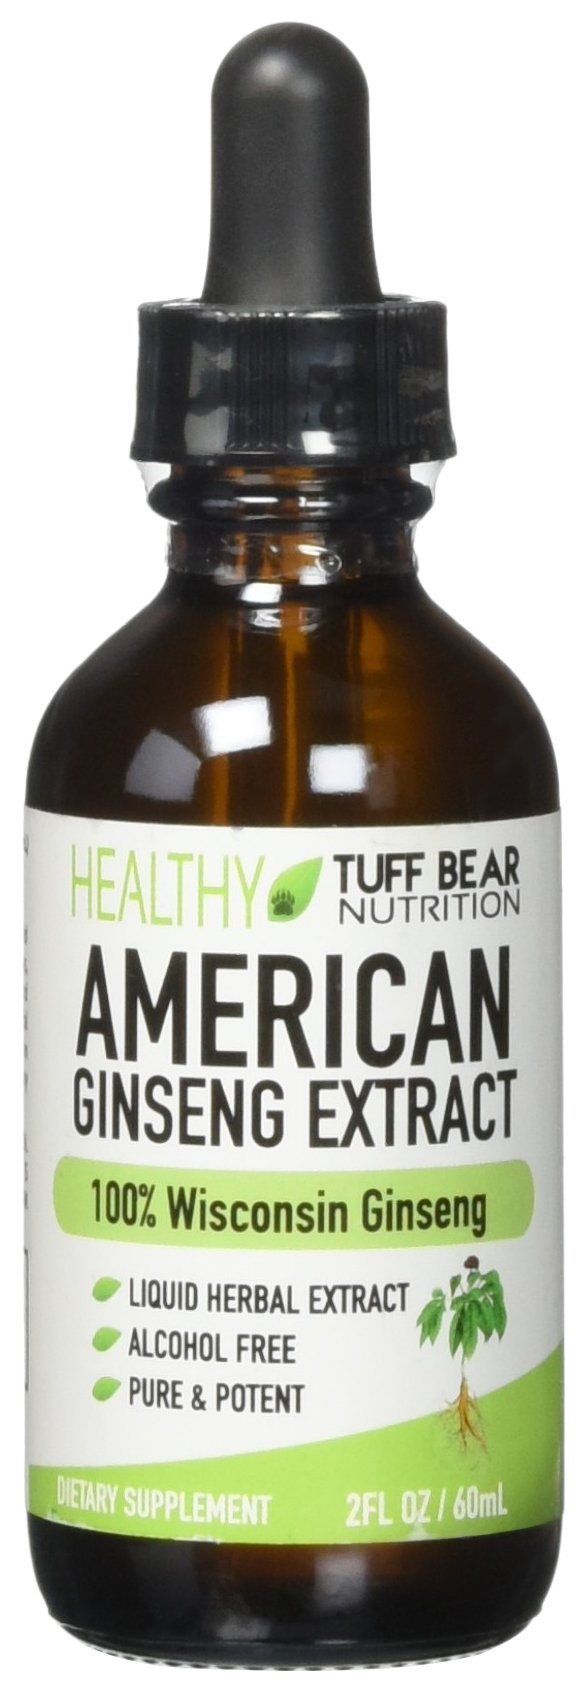 American Ginseng Extract, 2FL oz, BEST American Wisconsin Ginseng Extract, Made with 100